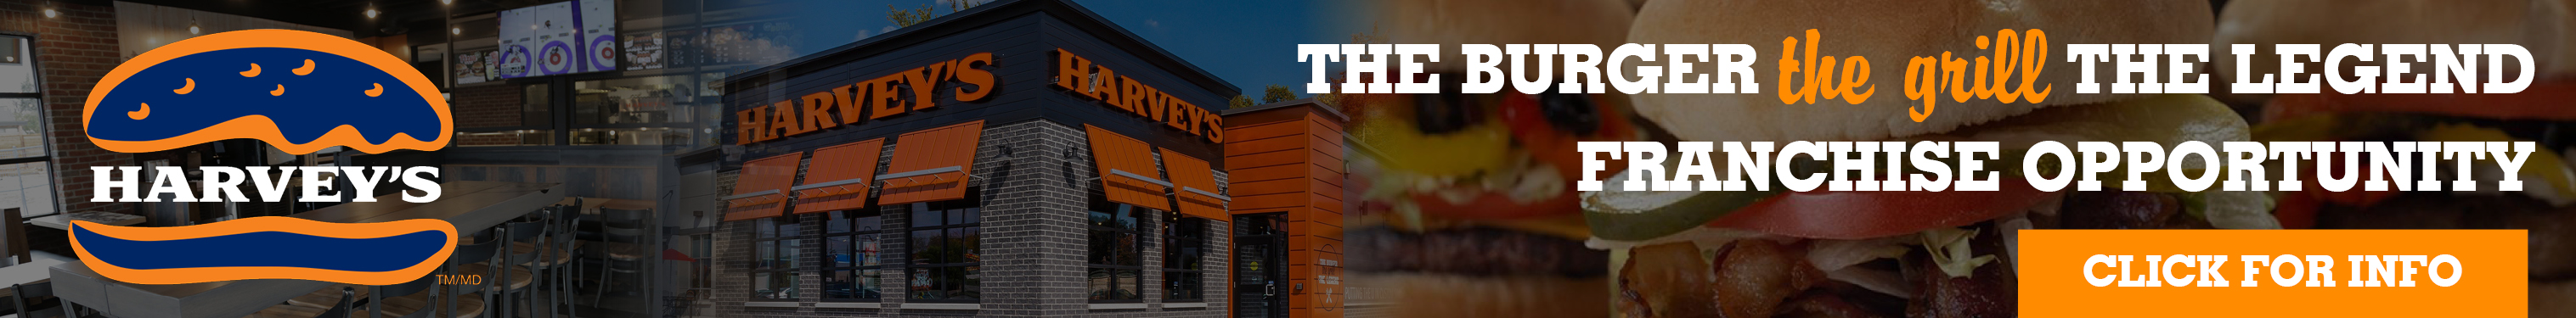 Harvey's Franchise Opportunity